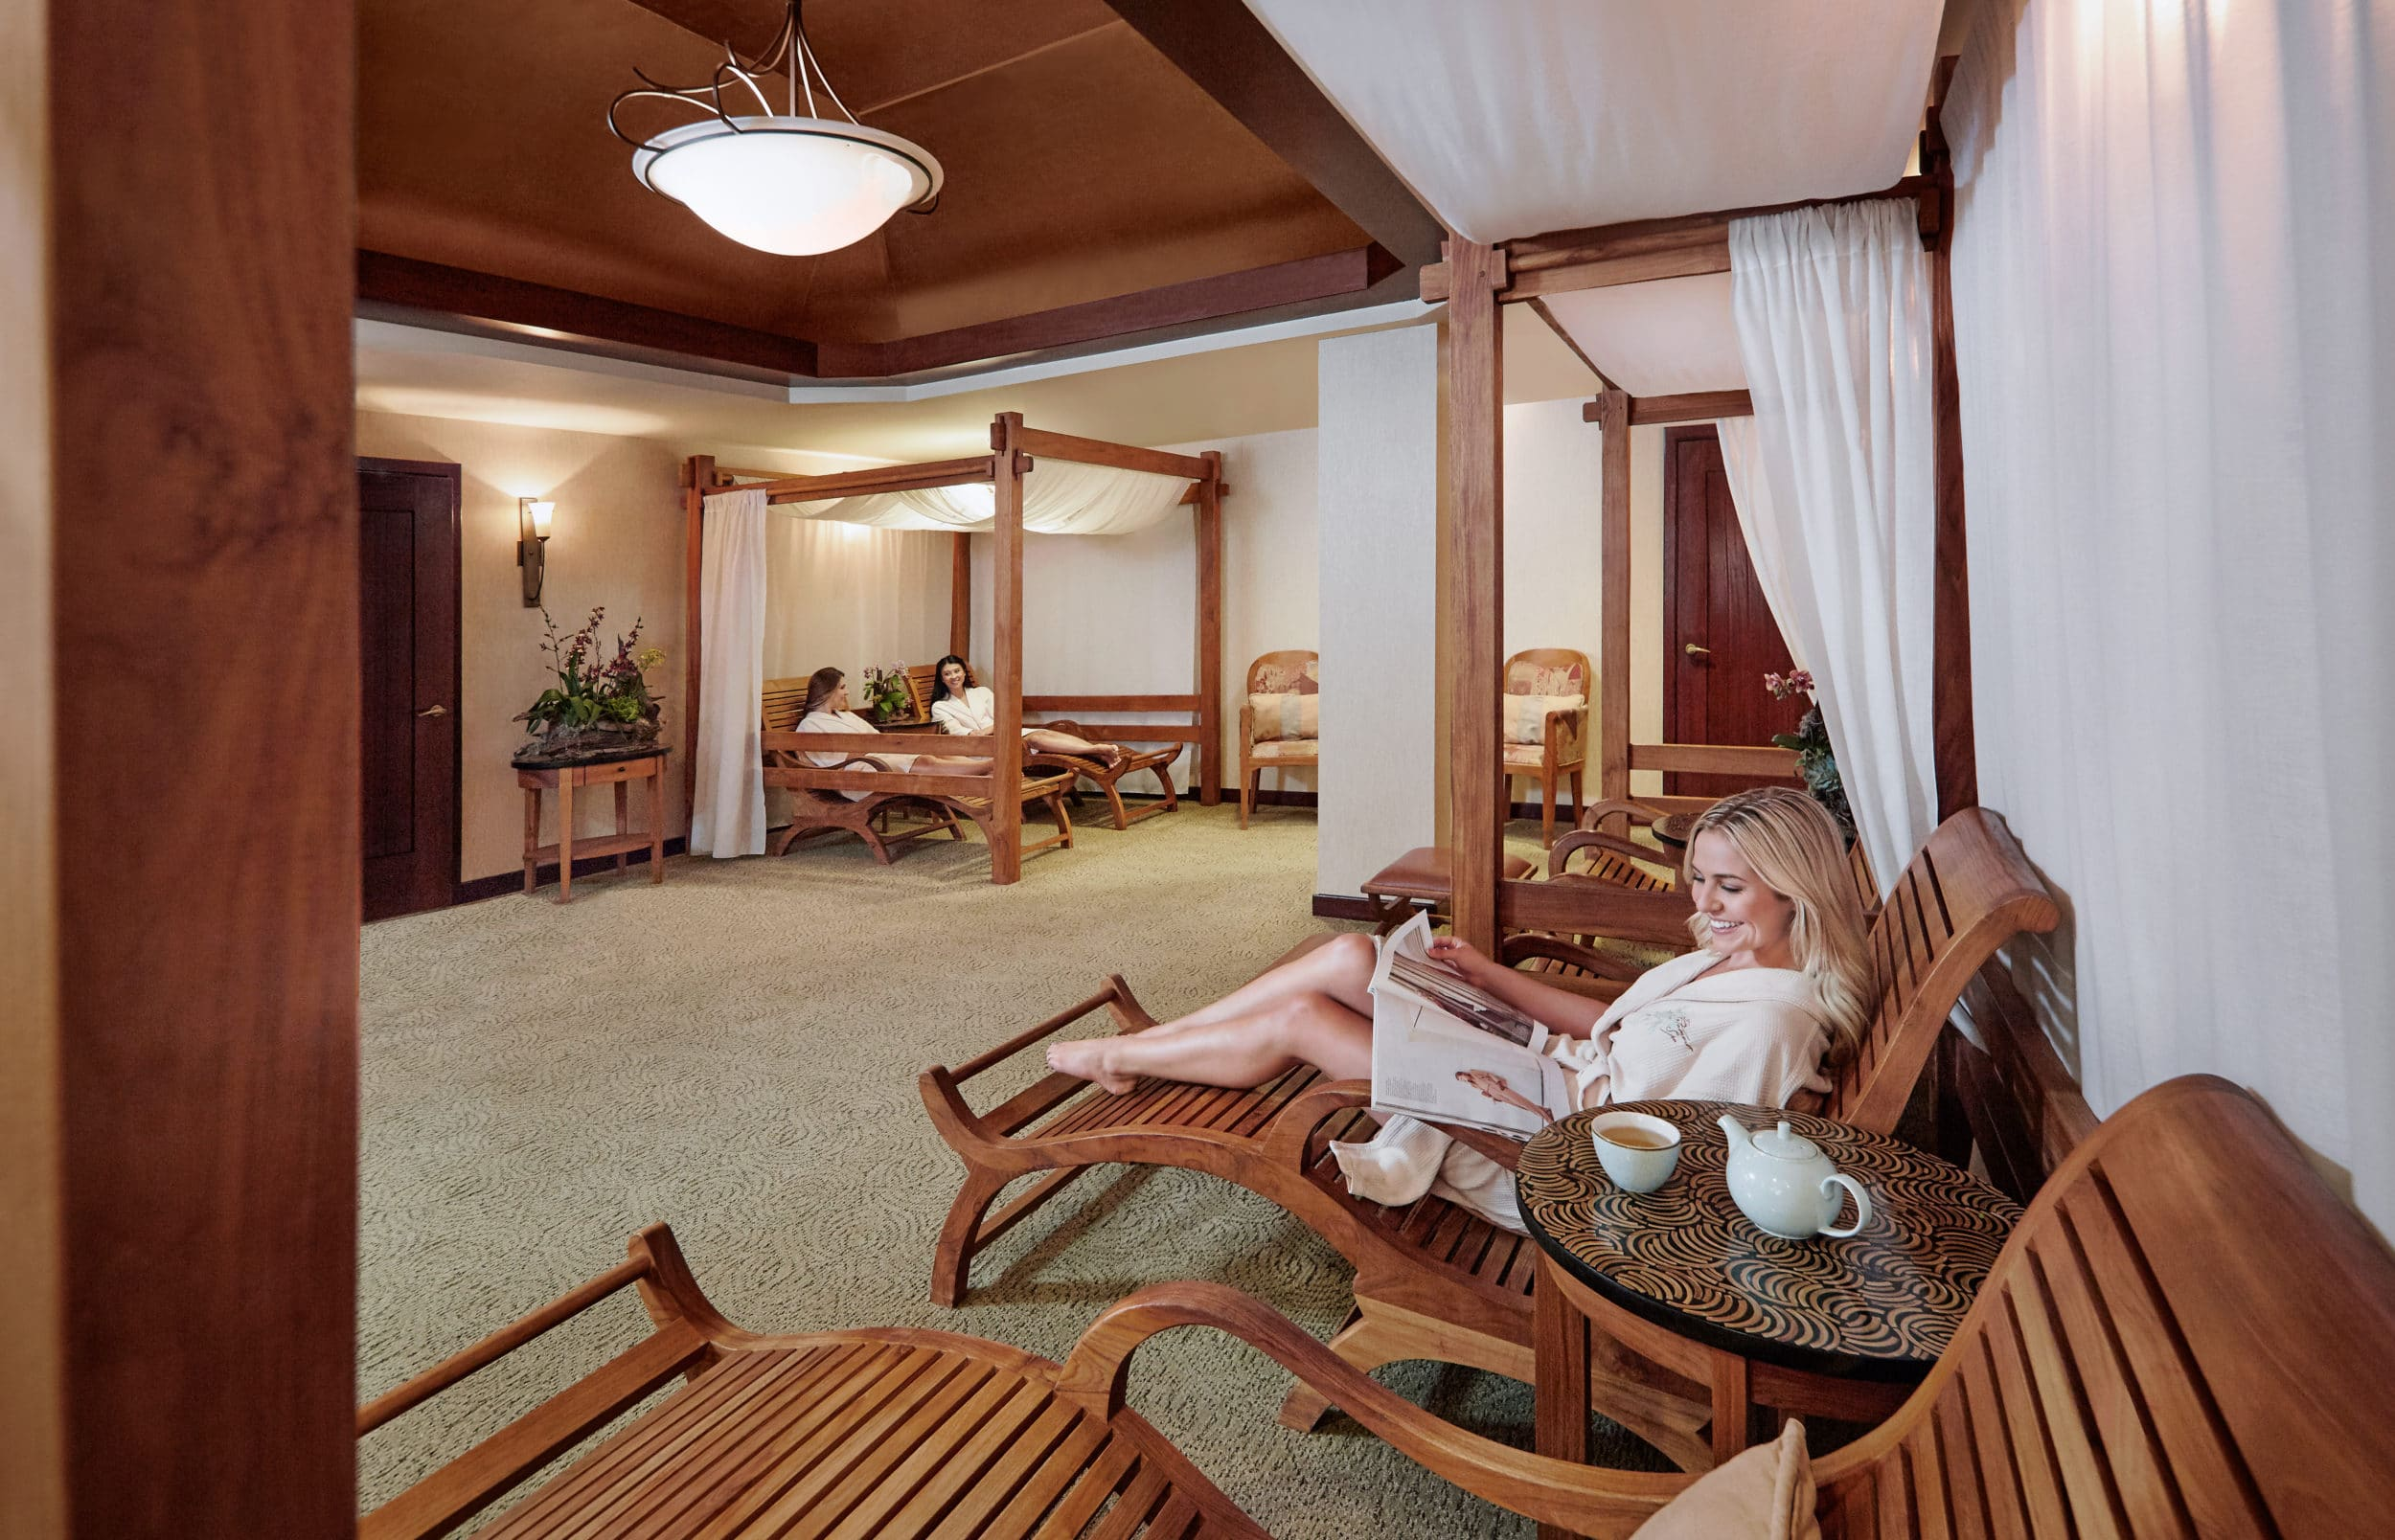 Relaxation room at Catamaran Spa in San Diego